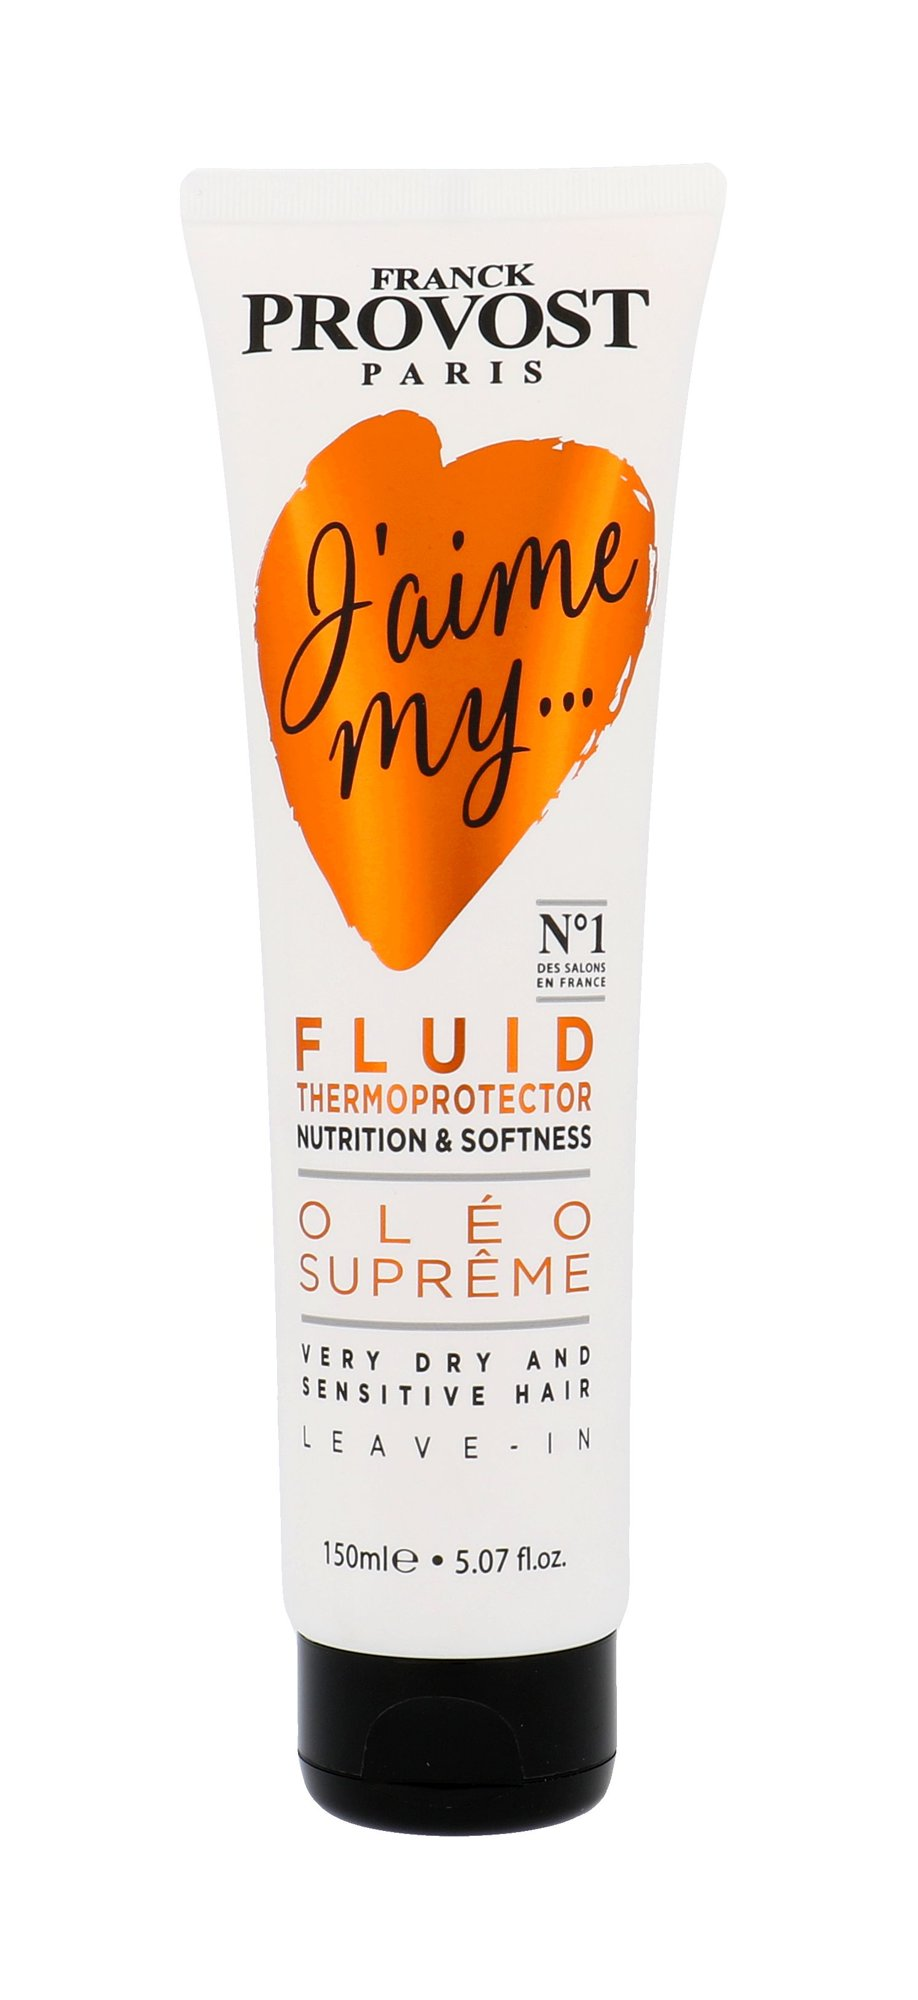 FRANCK PROVOST PARIS J´Aime My... Oléo Supreme Fluid Thermoprotector Cosmetic 150ml